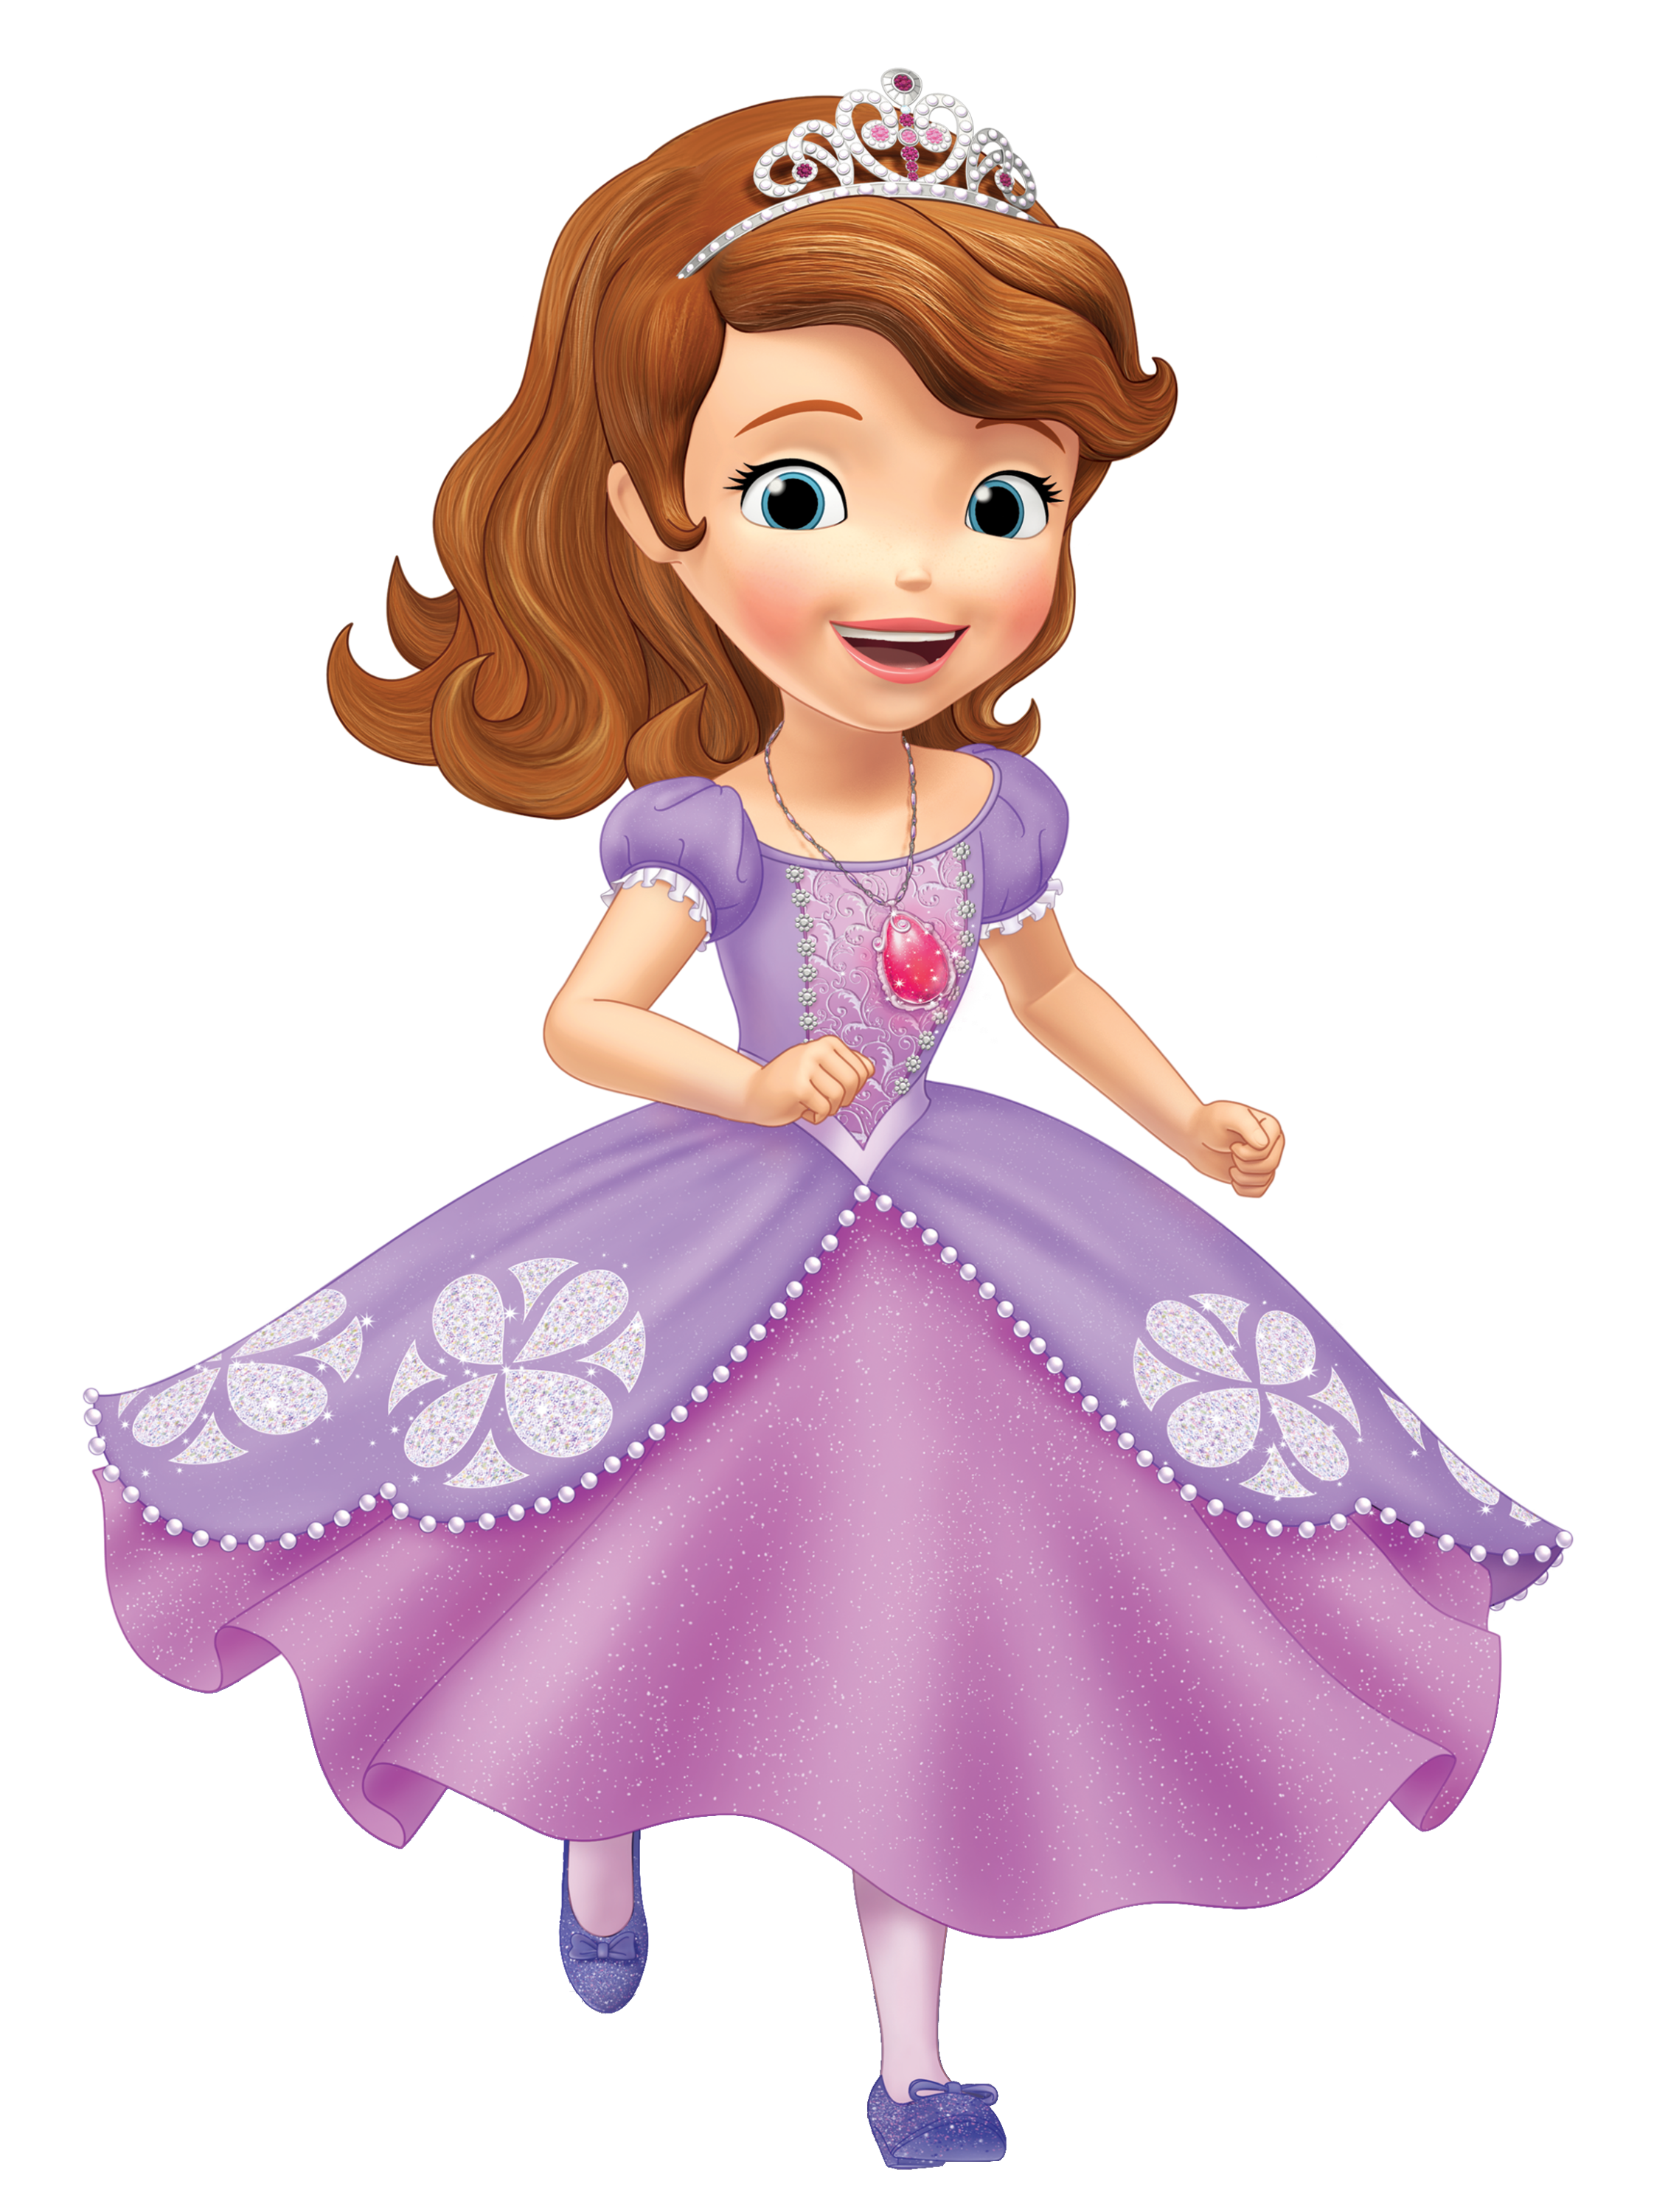 Sofia the first crown clipart png free library Pin by maria marques on estampa_chinelo_CARROS   Pinterest png free library